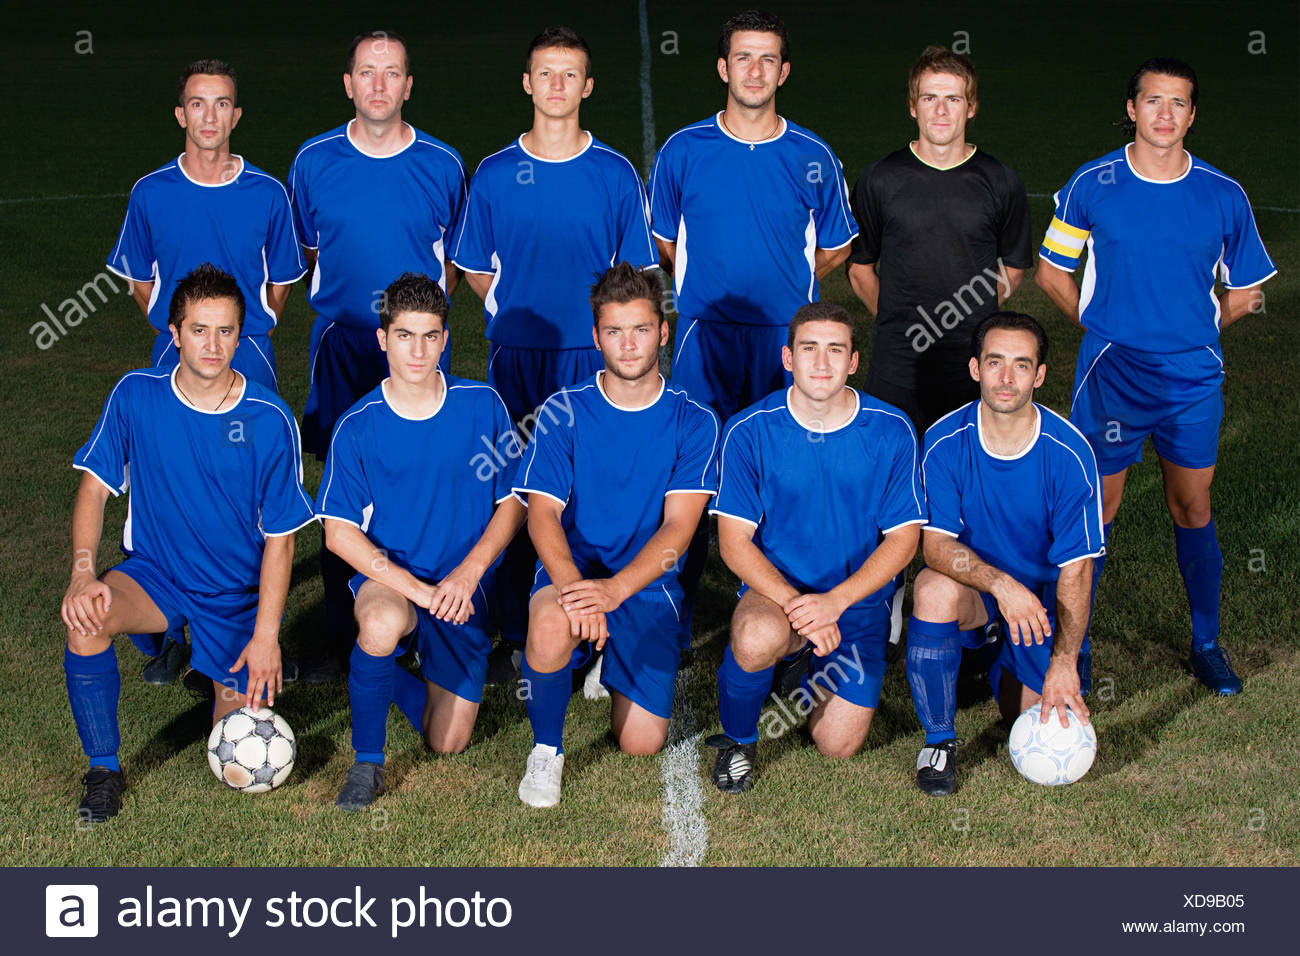 Portrait of a football team - Stock Image